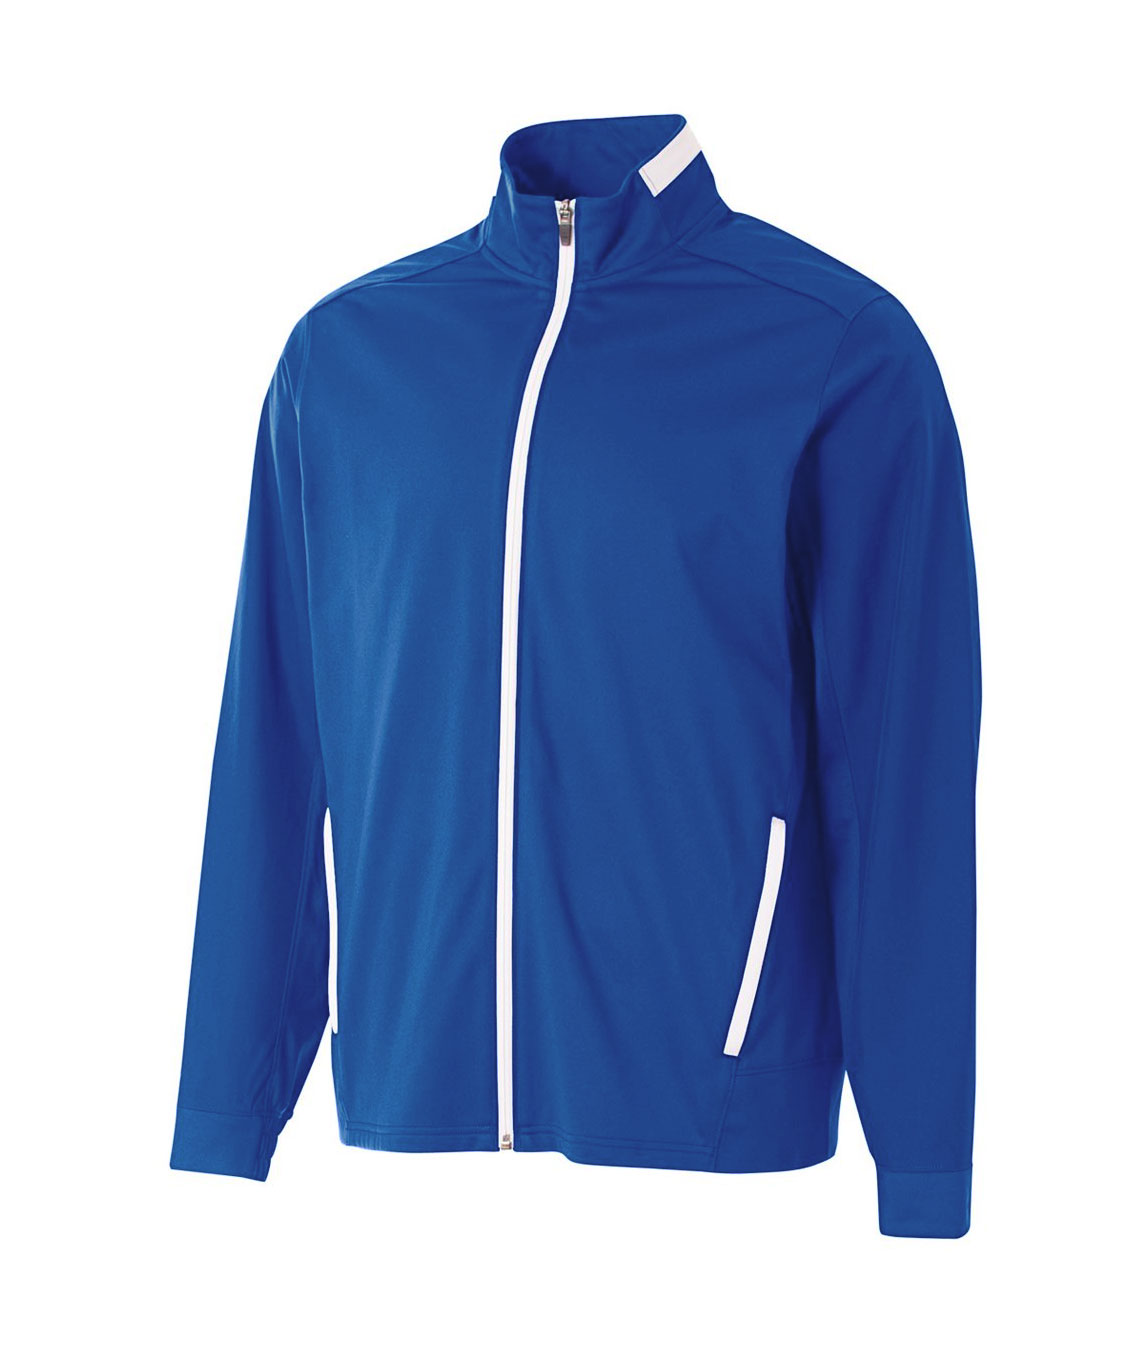 Mens League Full Zip Warm Up Jacket